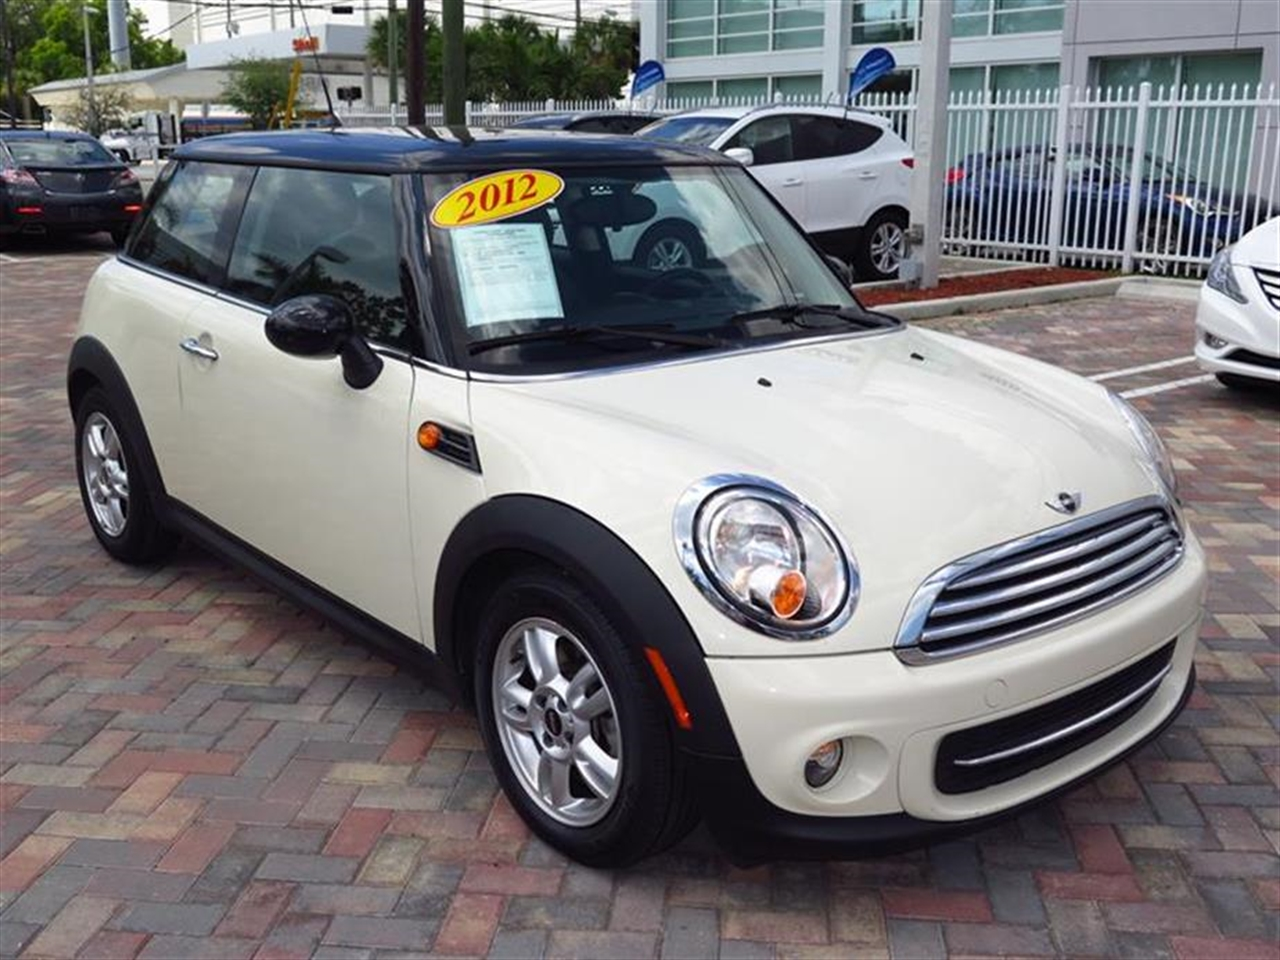 2012 MINI COOPER 2dr Cpe 28970 miles 1 rear cup holder 12V auxiliary pwr outlet in cockpit  l